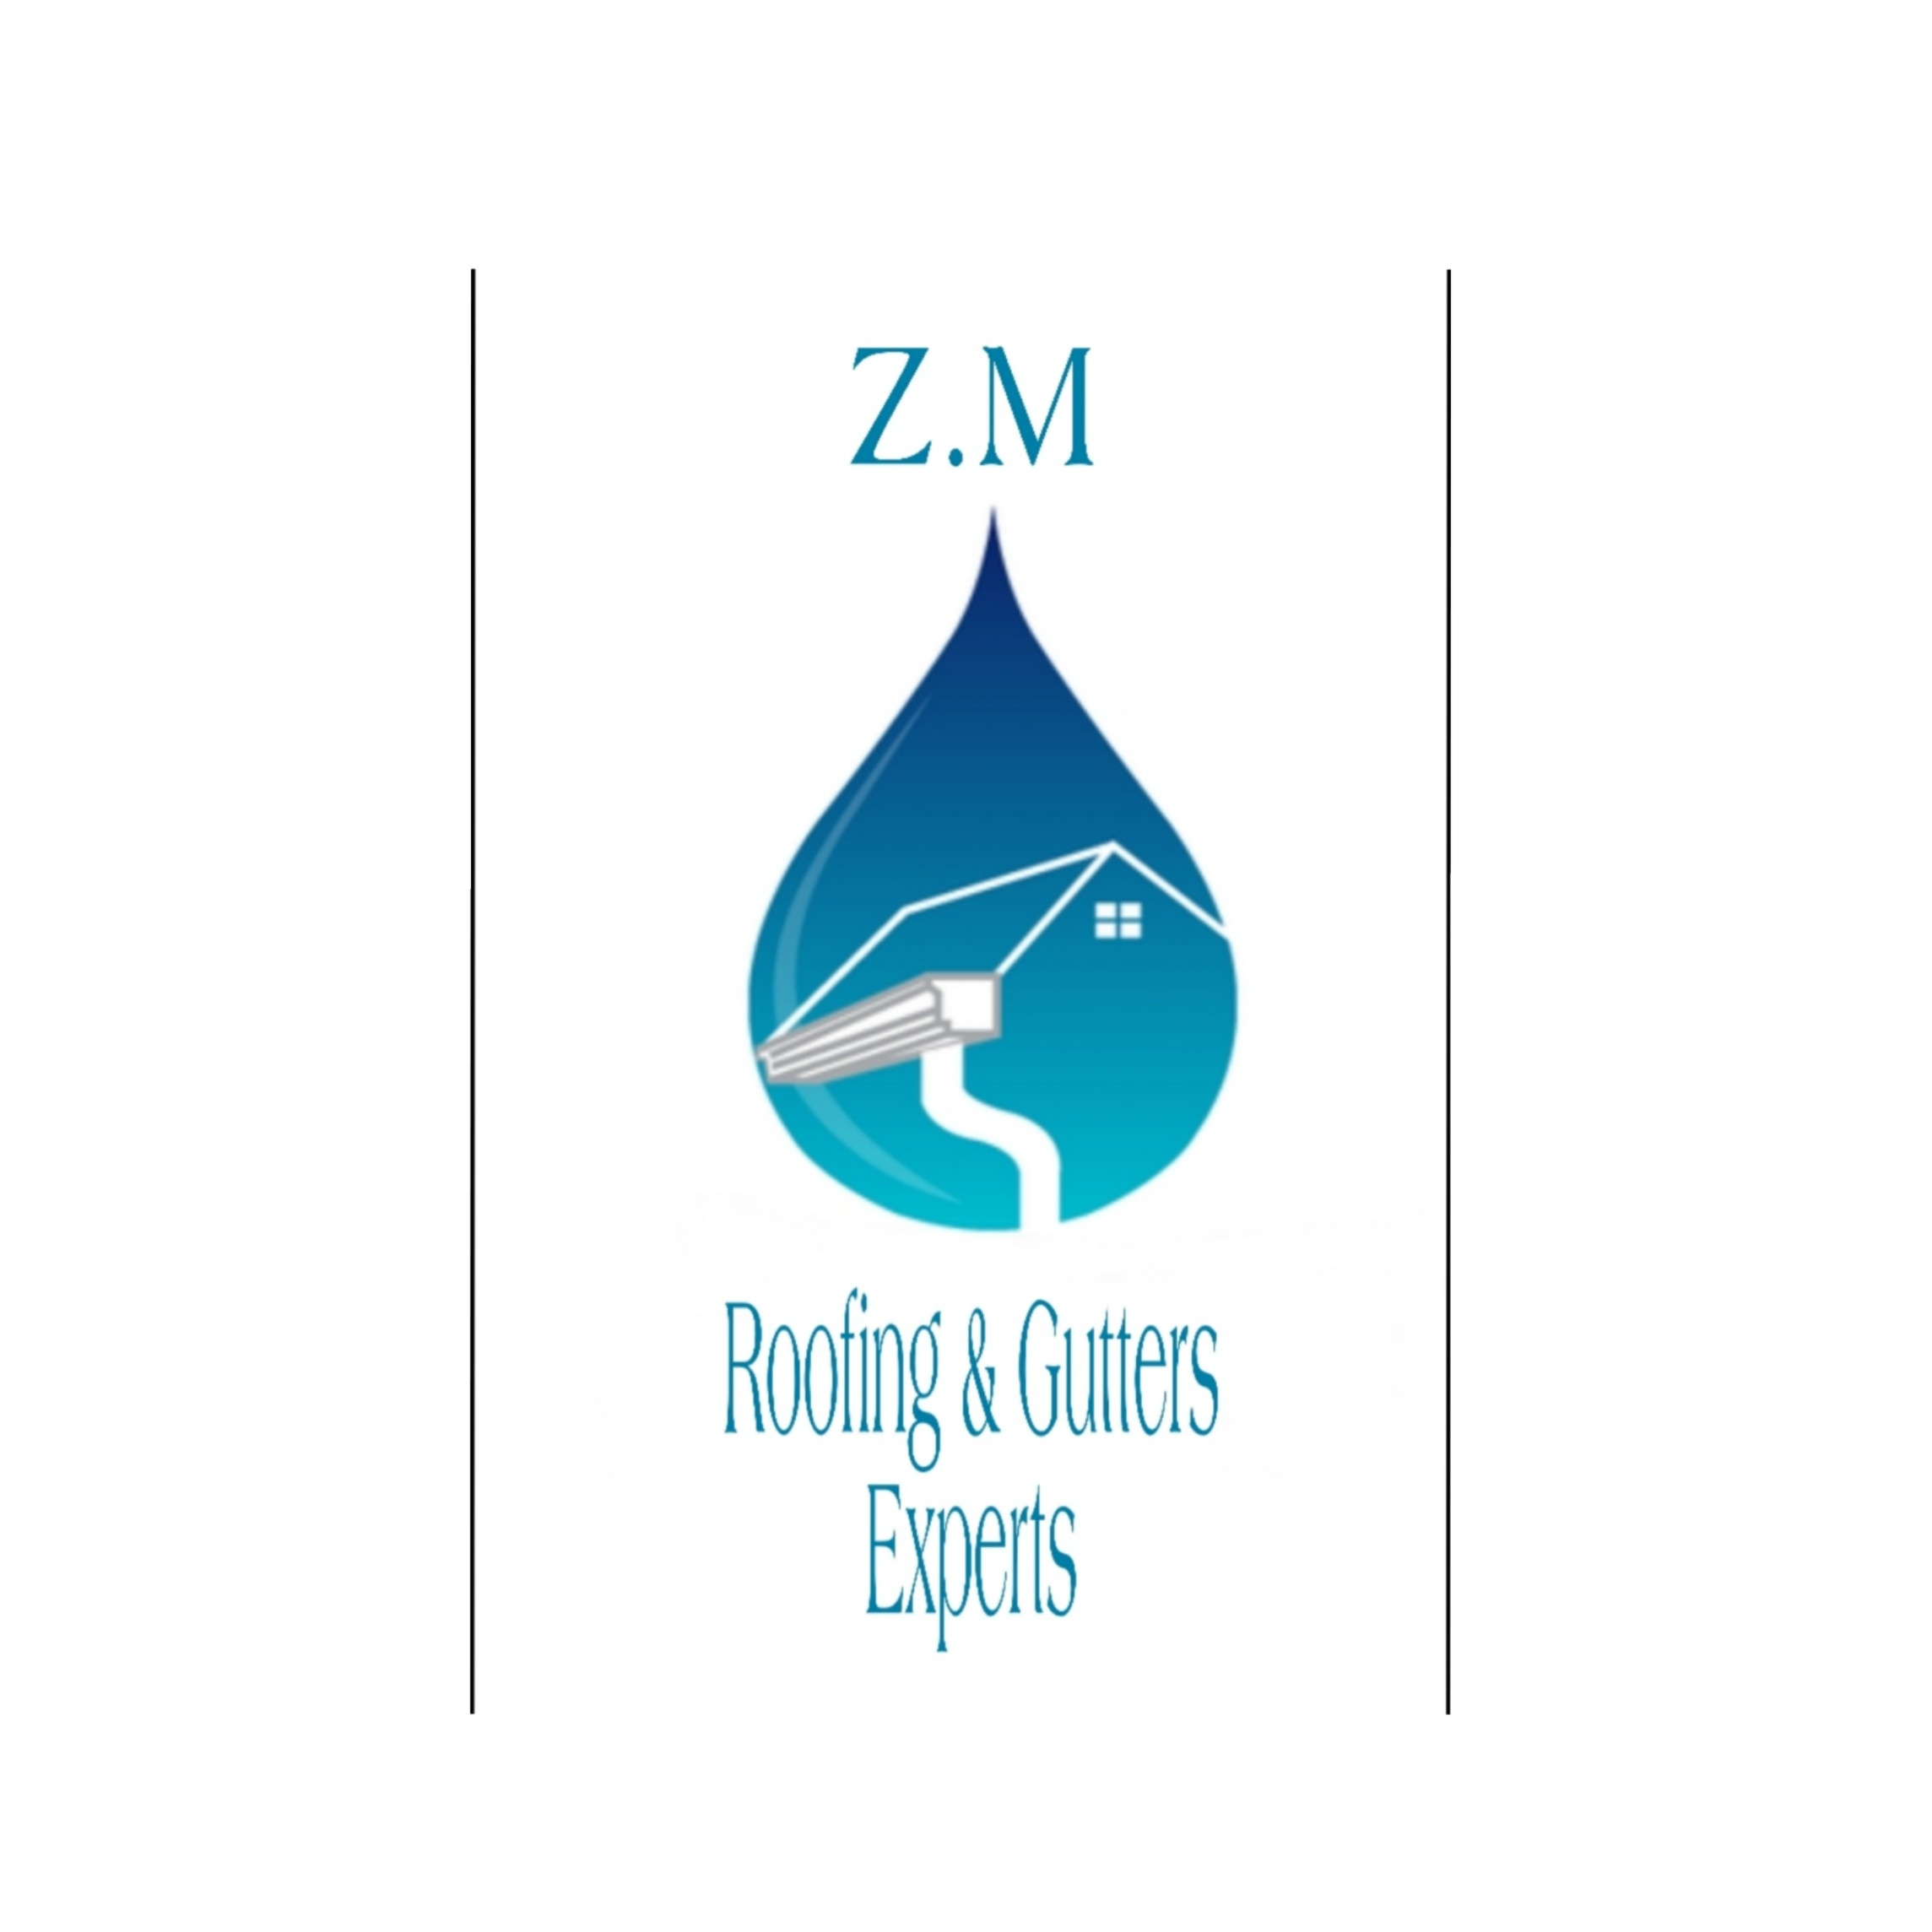 Z.M Roofing & Gutters Experts